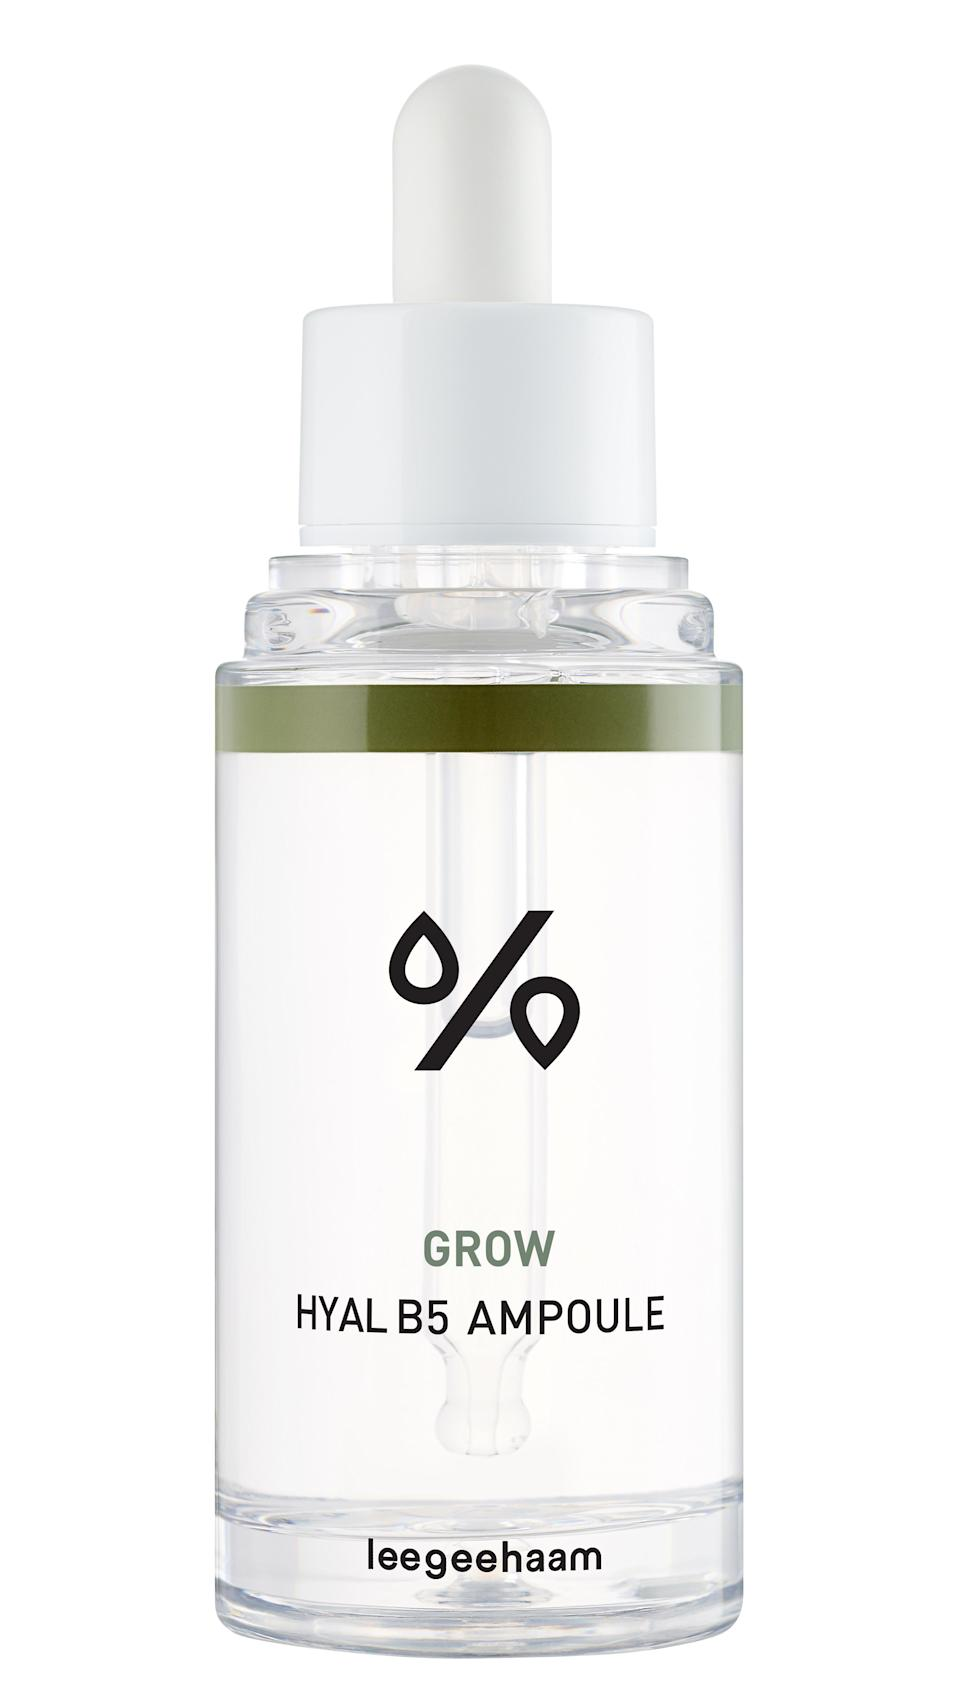 """<strong>The Brightener:</strong> Niacinamide <br><br>Dr. Moy likes niacinamide (also known as vitamin B3) for its ability to increase DNA repair when taken orally and reduce the appearance of dark spots. Formulators like the ingredient used topically for its multi-tasking abilities, as it can address uneven texture in addition to dullness. Niacinamide stars as the main ingredient in this ampoule, which also features five types of hyaluronic acid to quench dry skin.<br><br><strong>Leegeehaam</strong> Grow Hyal B5 Ampoule, $, available at <a href=""""https://go.skimresources.com/?id=30283X879131&url=https%3A%2F%2Fwww.glowrecipe.com%2Fproducts%2Fleegeehaam-grow-hyal-b5-ampoule"""" rel=""""nofollow noopener"""" target=""""_blank"""" data-ylk=""""slk:Glow Recipe"""" class=""""link rapid-noclick-resp"""">Glow Recipe</a><br><br>"""